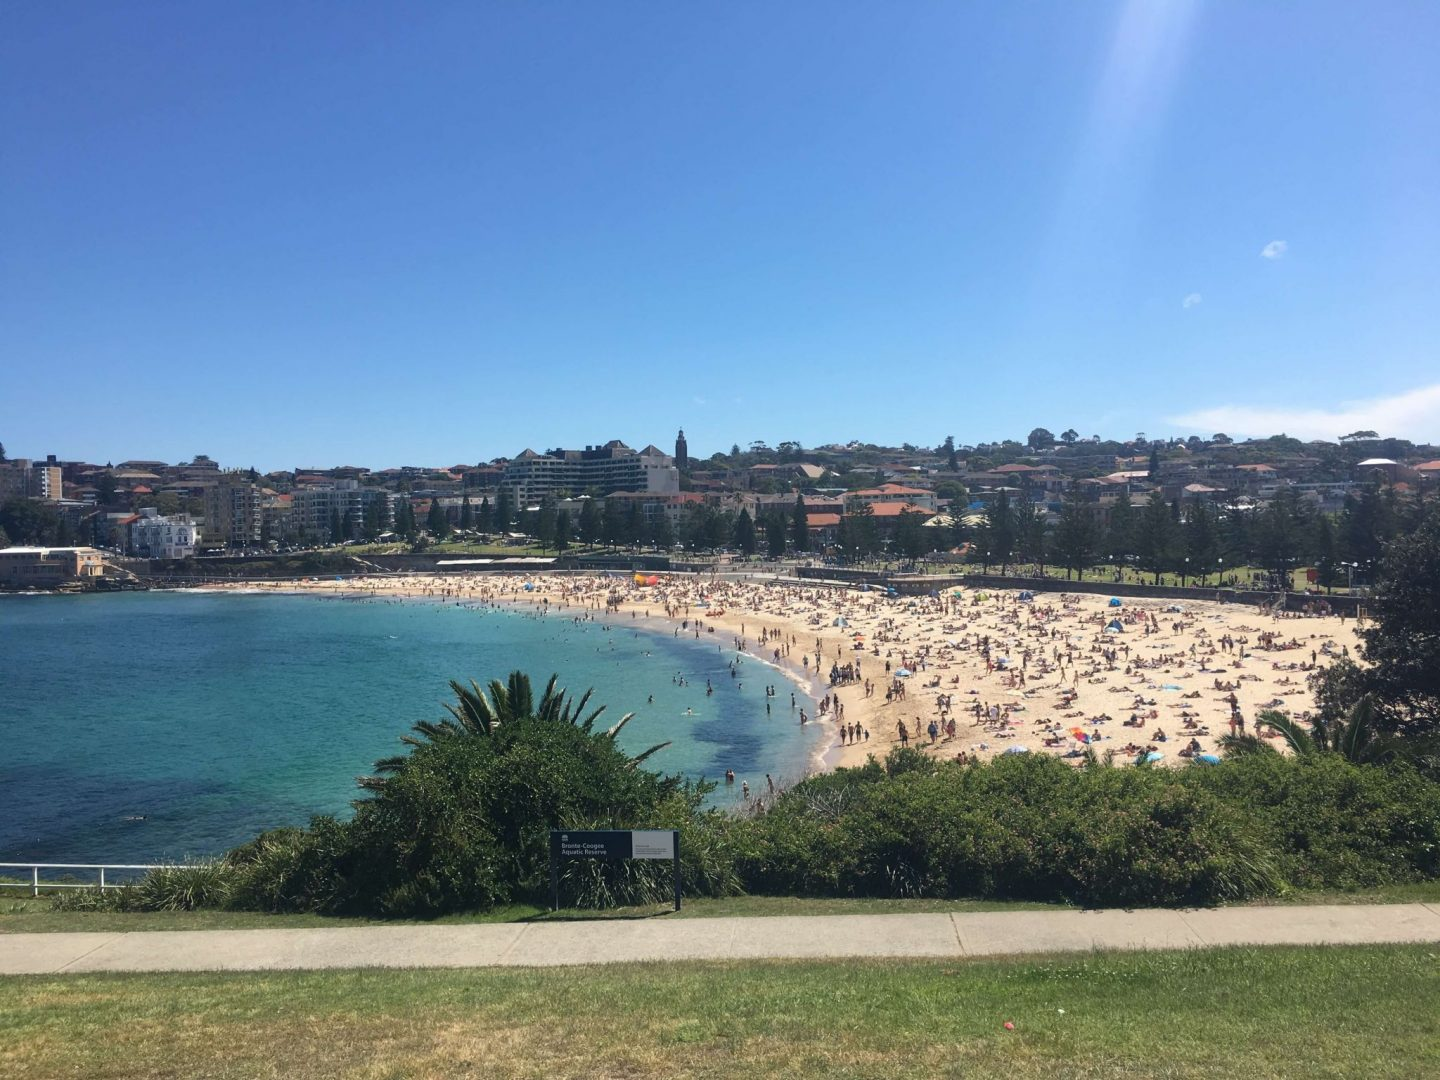 Overview of Coogee Beach